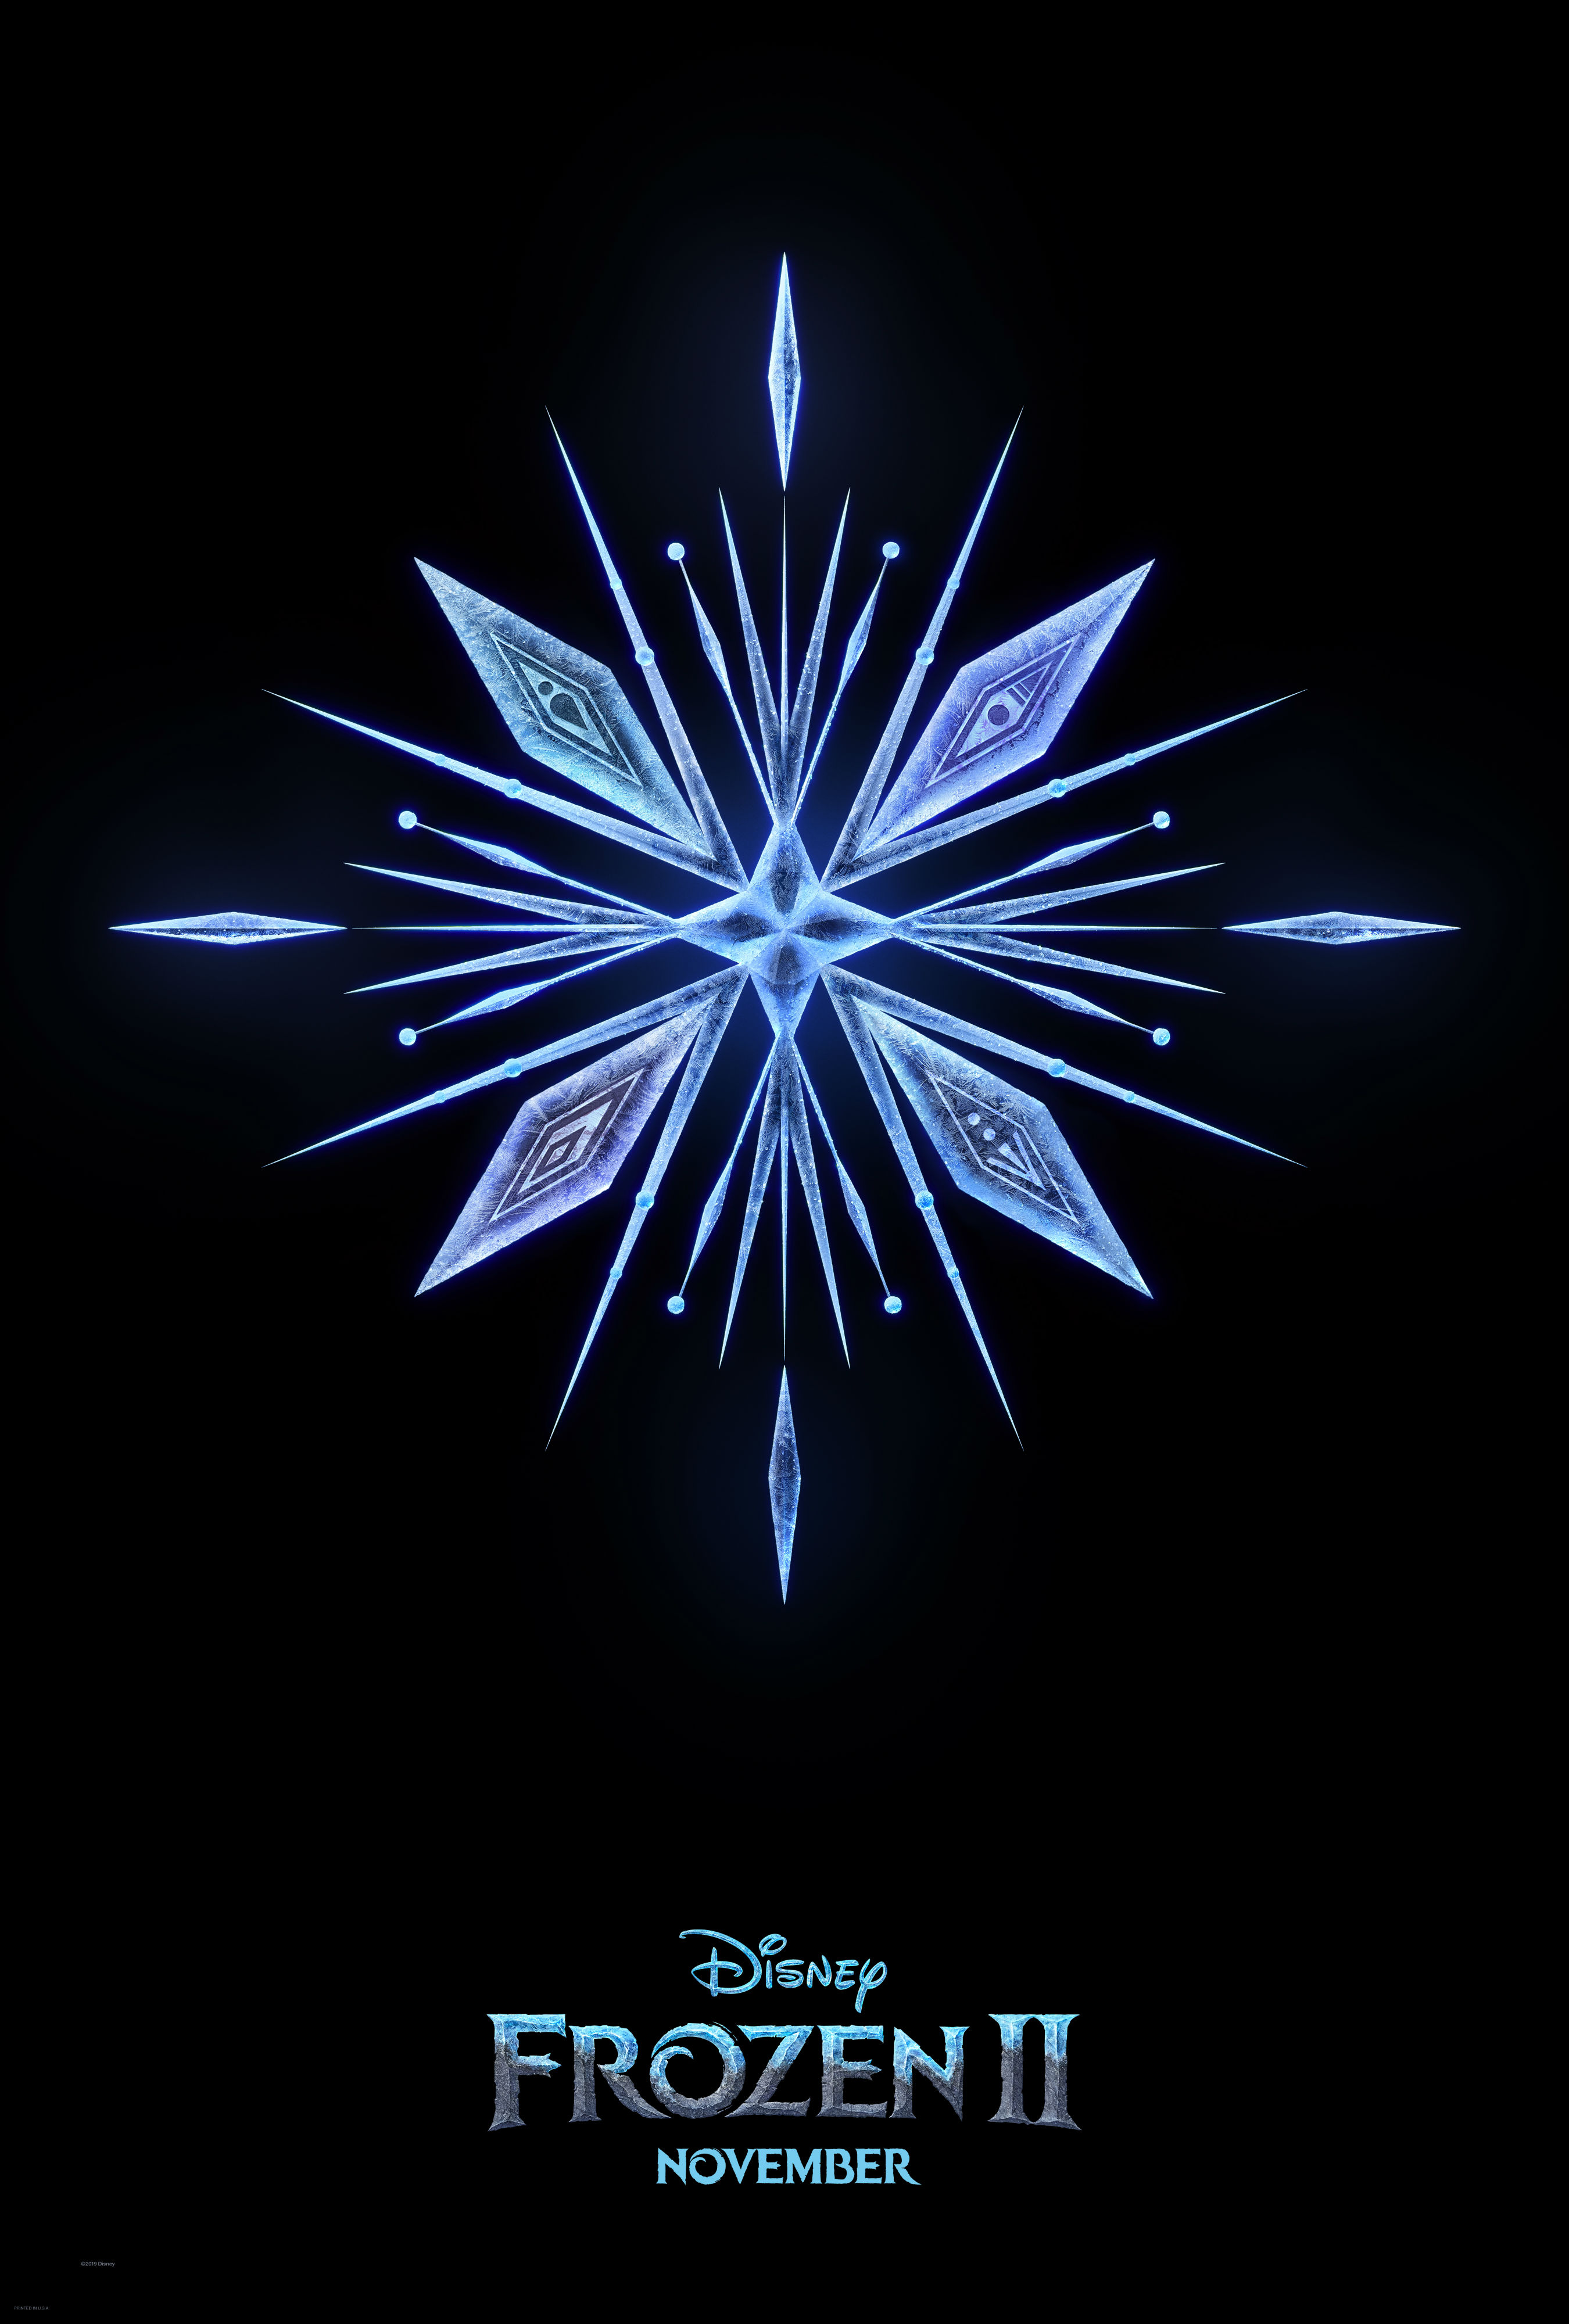 New Trailer Photos For Frozen 2 Blackfilm Com Black Movies Television And Theatre News